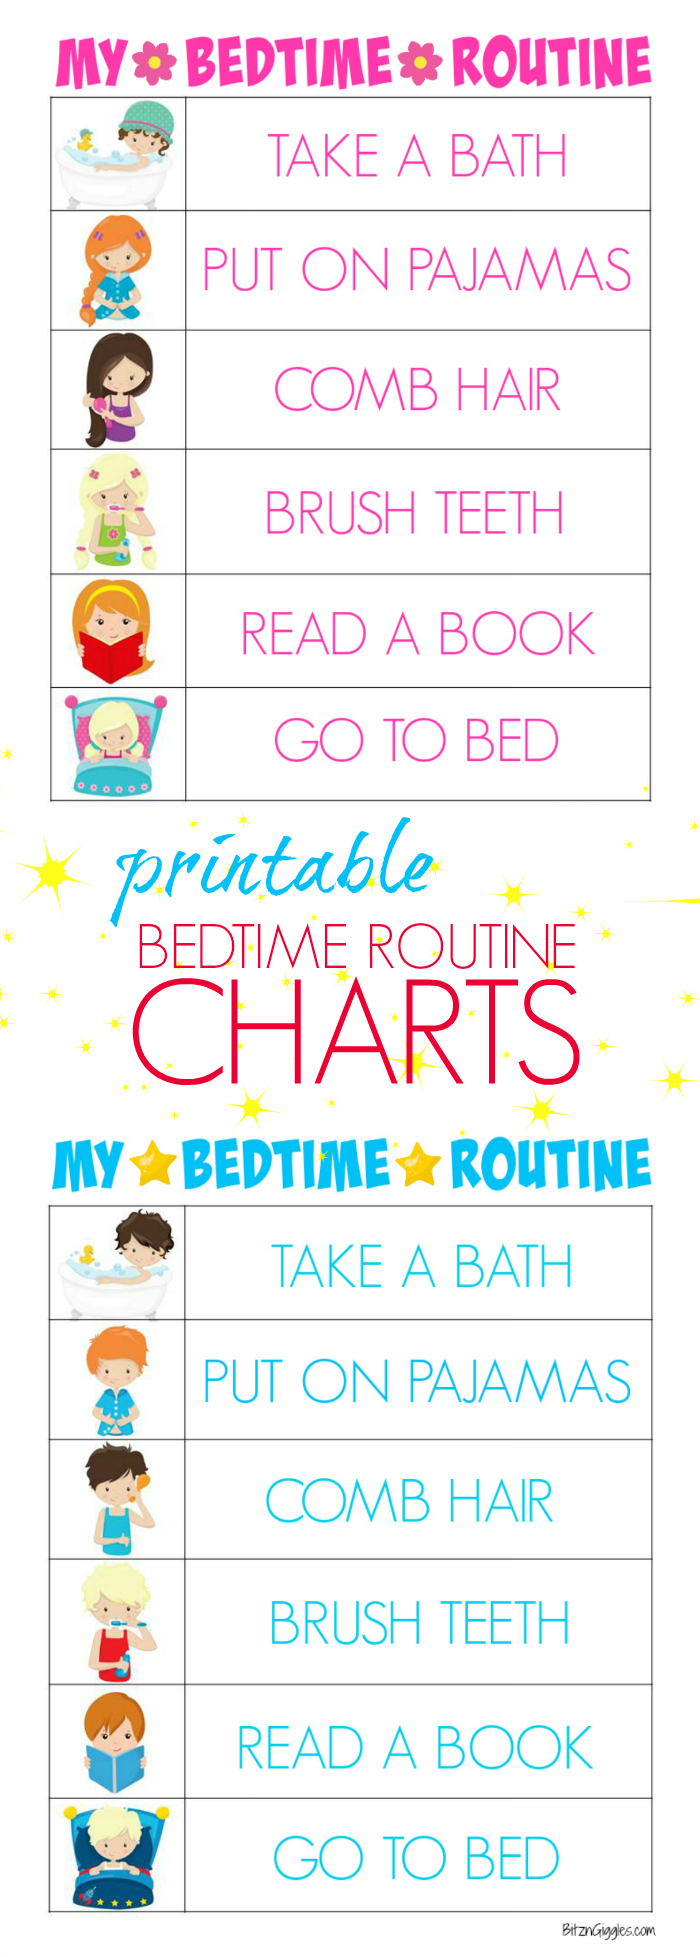 Printable Bedtime Routine Charts - Bitz & Giggles - Free Printable Bedtime Routine Chart